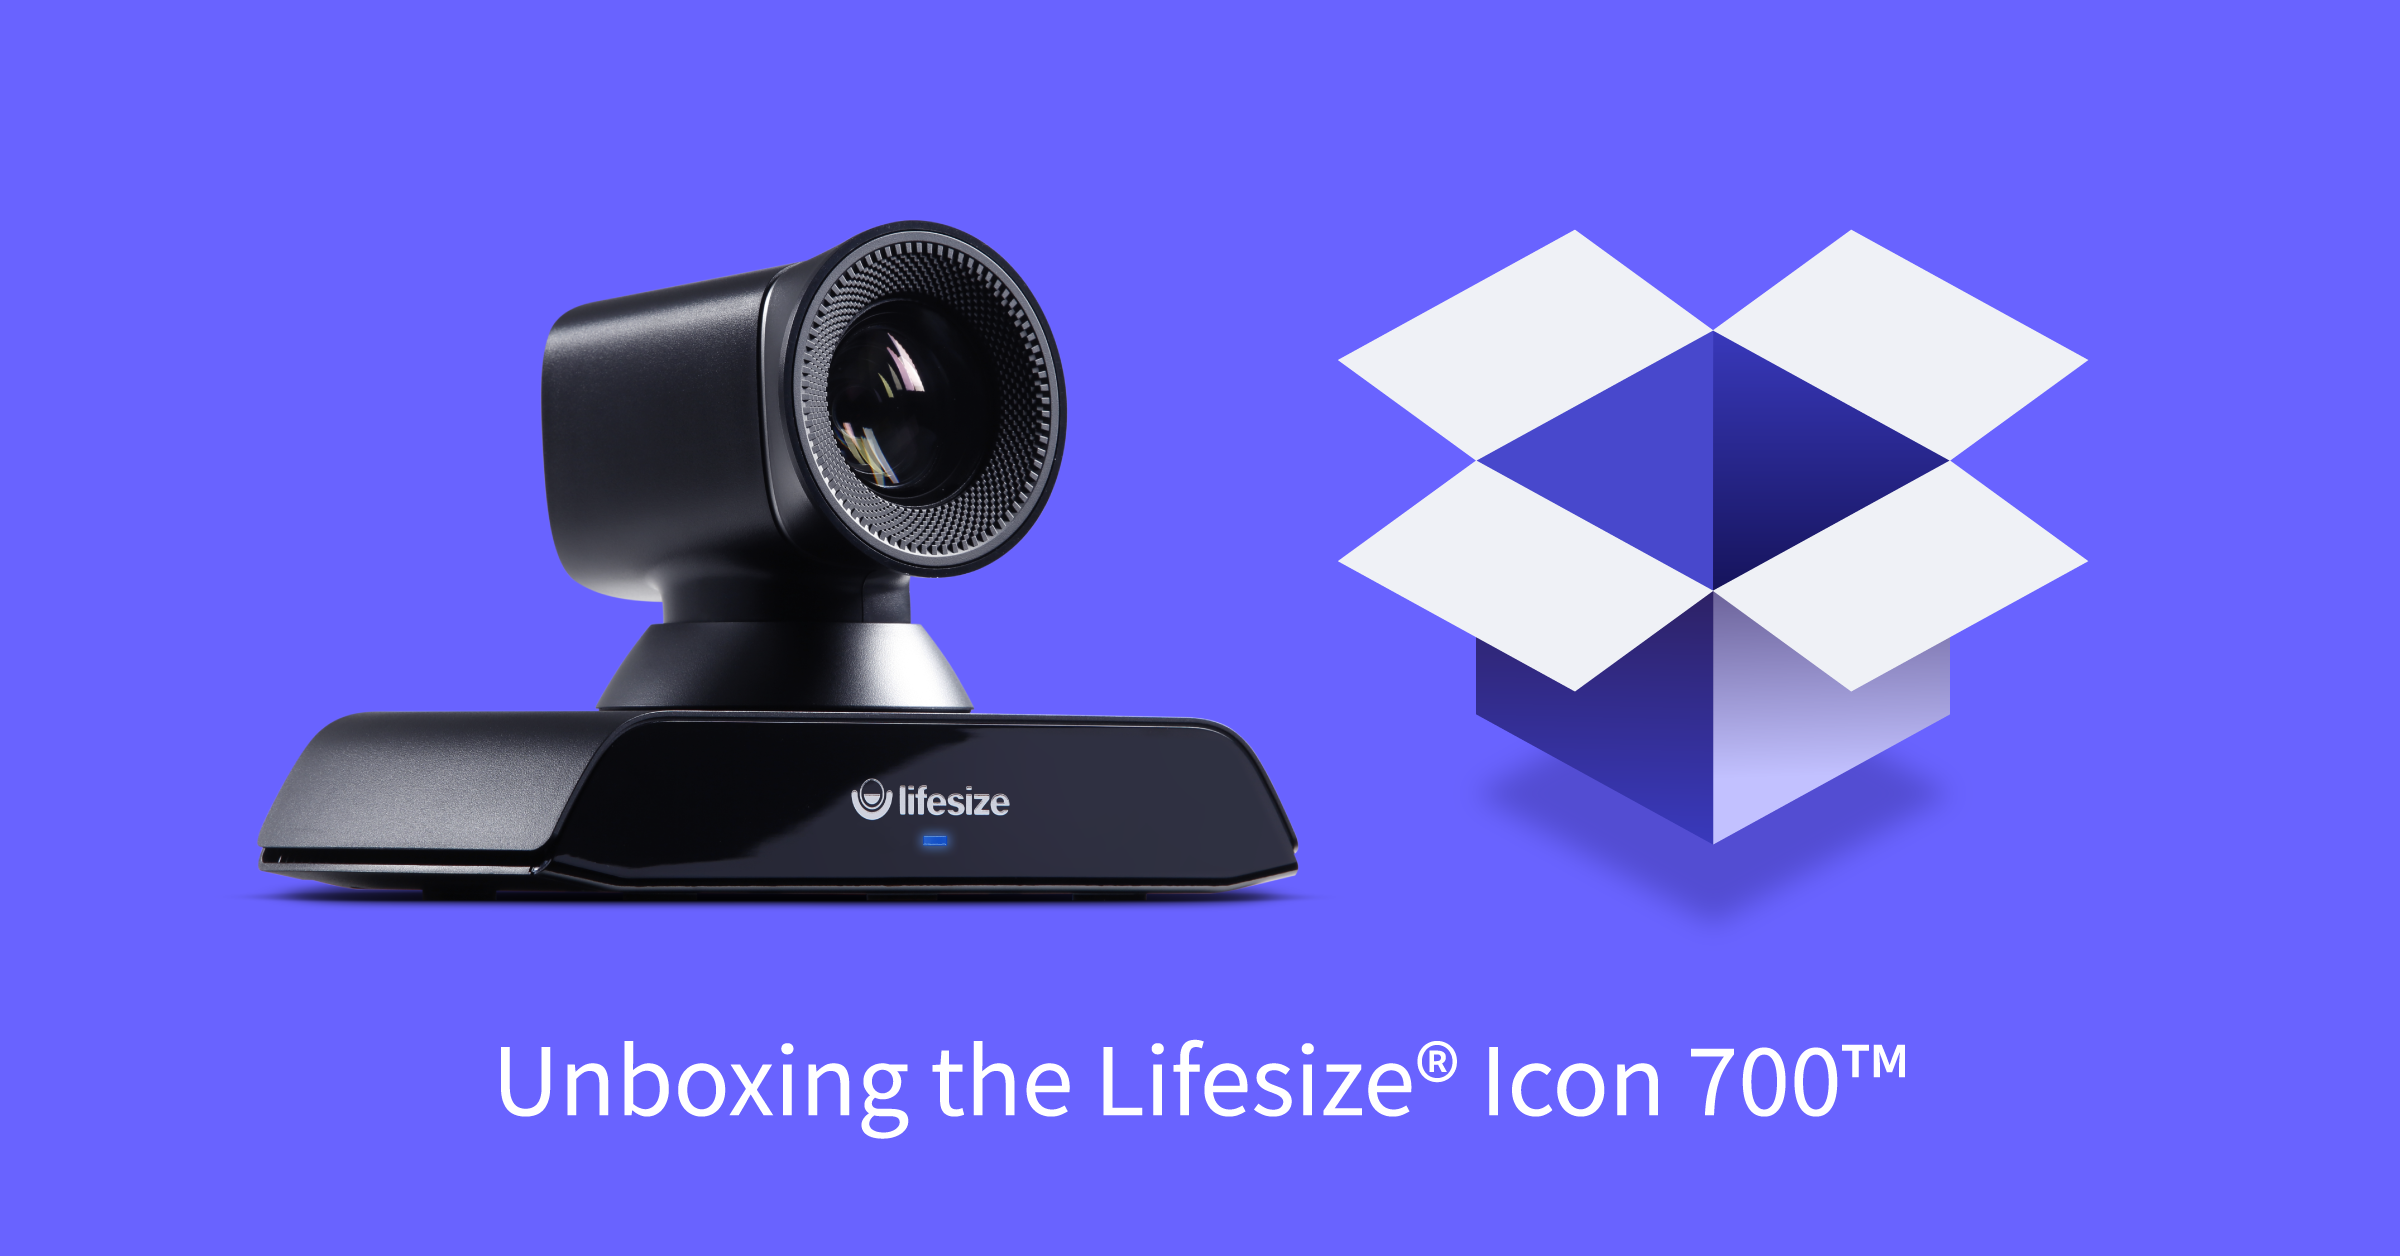 Unboxing the Lifesize Icon 700 4K video conferencing system